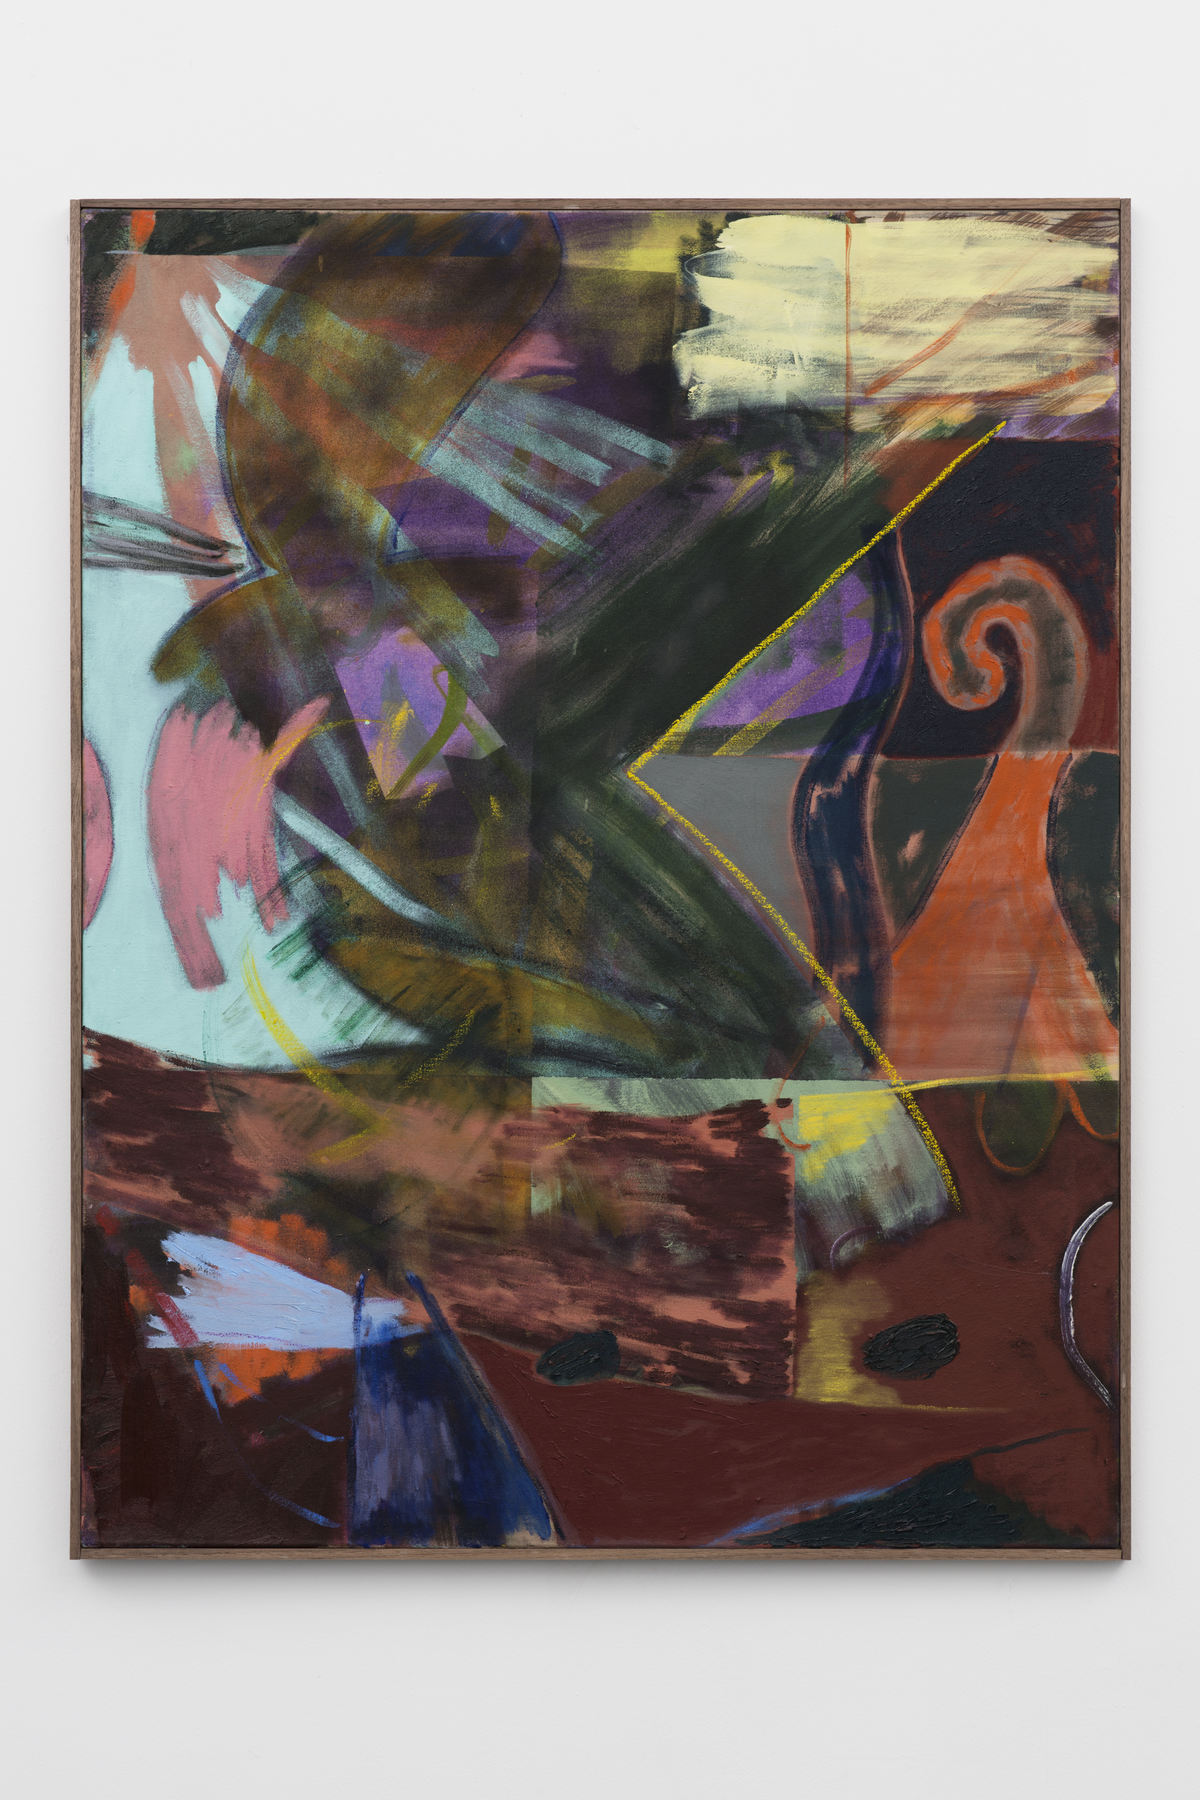 5-Jon-Pilkington-To-Be-Titled-Oil, wax crayon and lacquer on canvas -image courtesy CINNNAMON Rotterdam